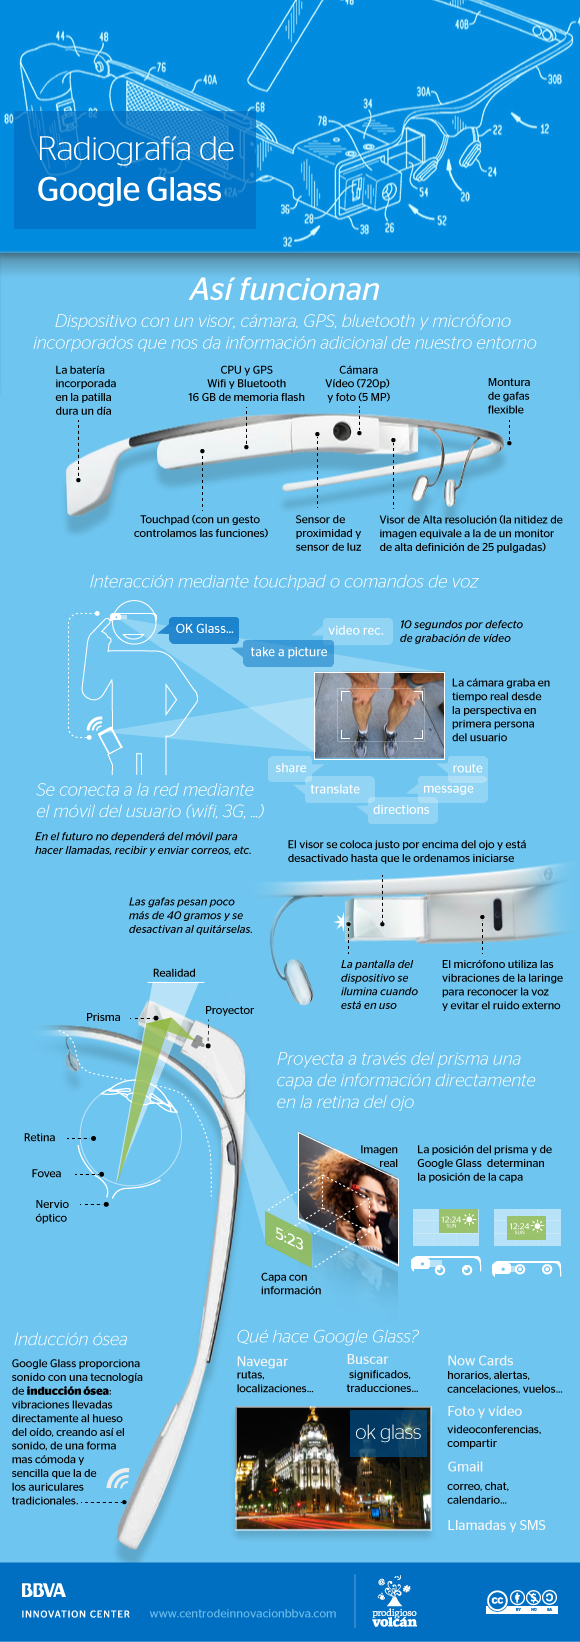 google_glass_infographic.png